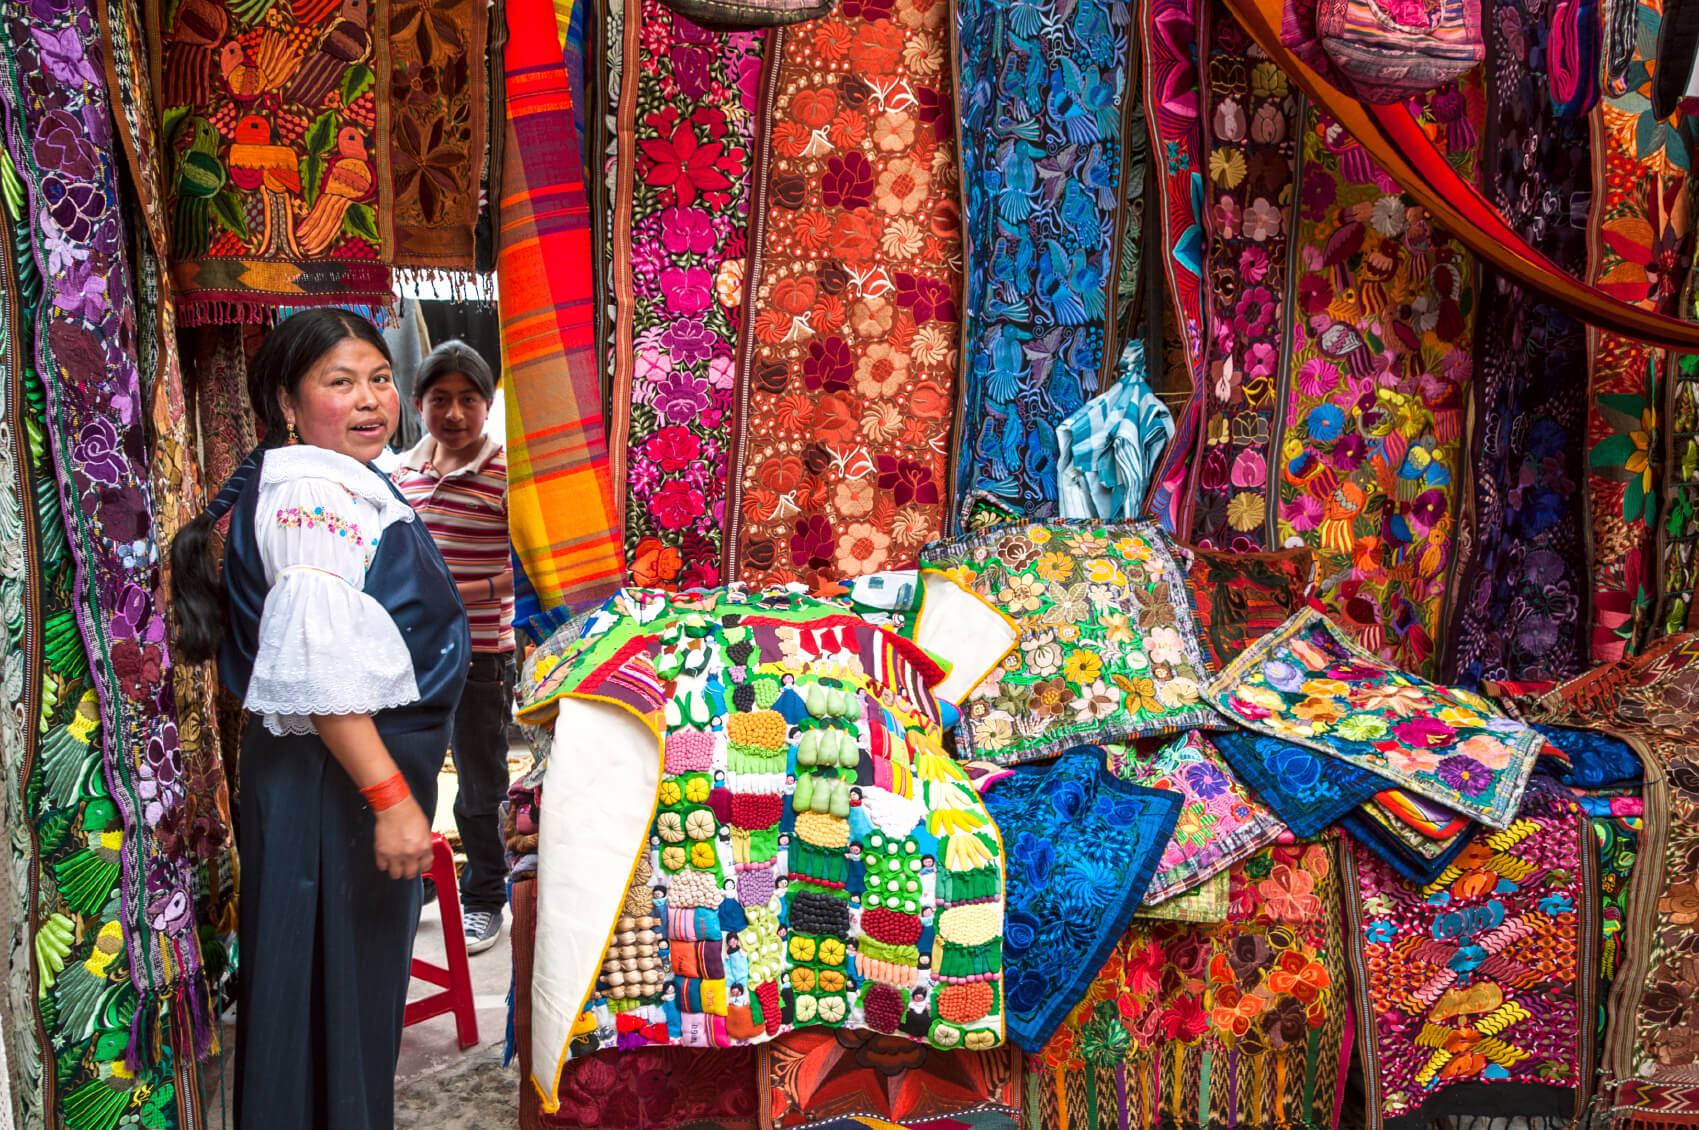 Respect local cultures when traveling abroad courtesy of Sustainable Travel